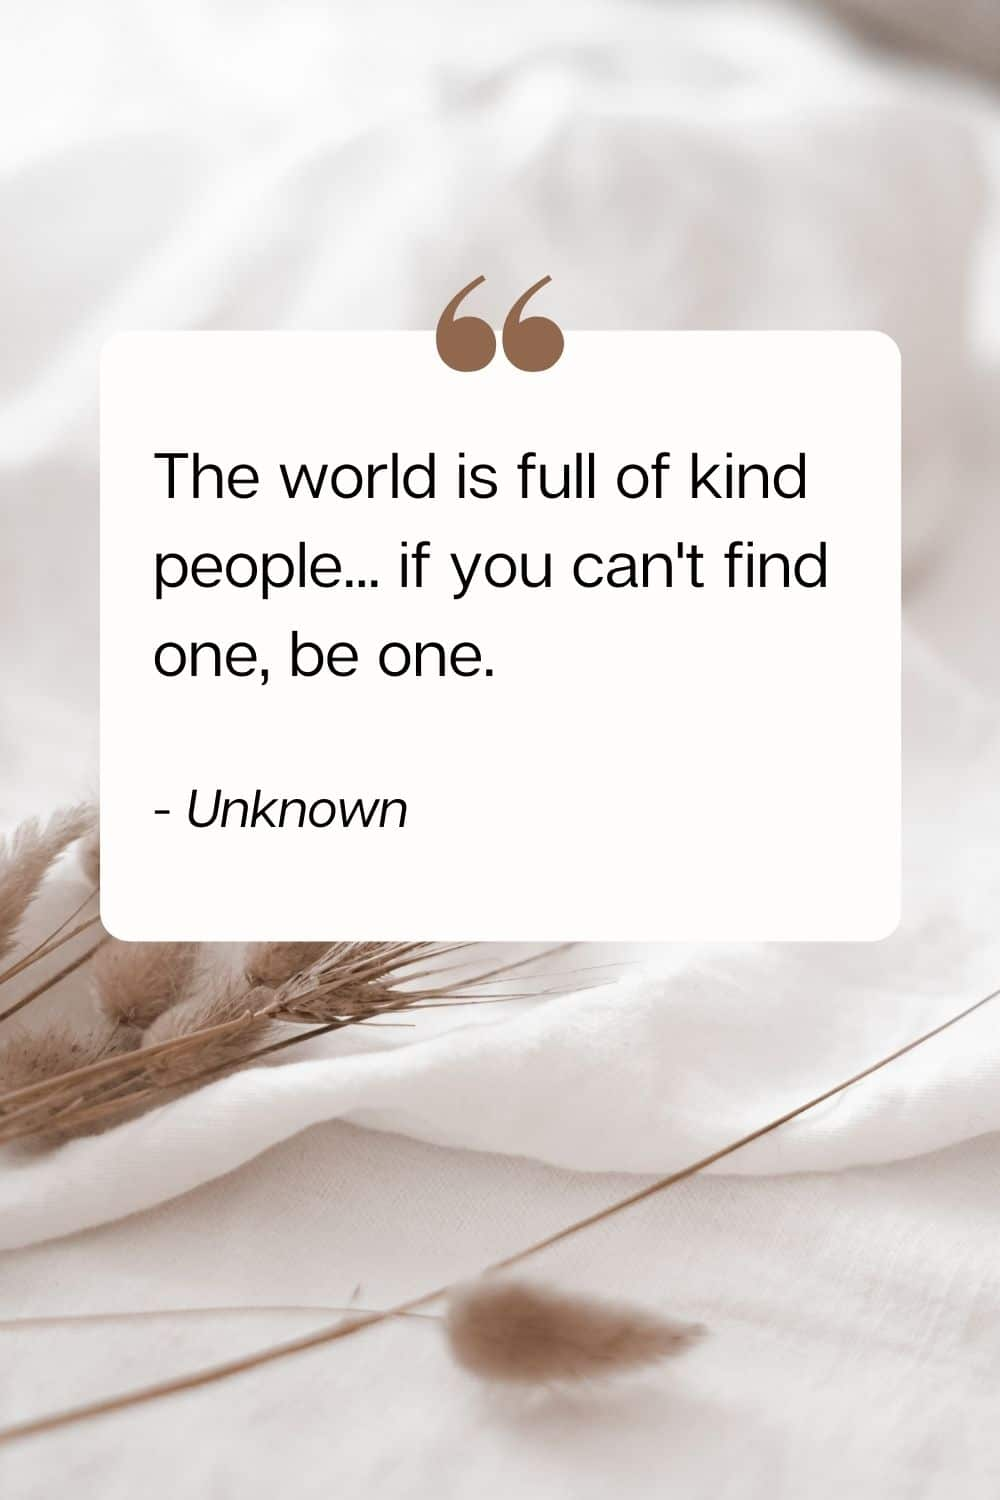 quote - The world is full of kind people... if you can't find one, be one. - Unknown